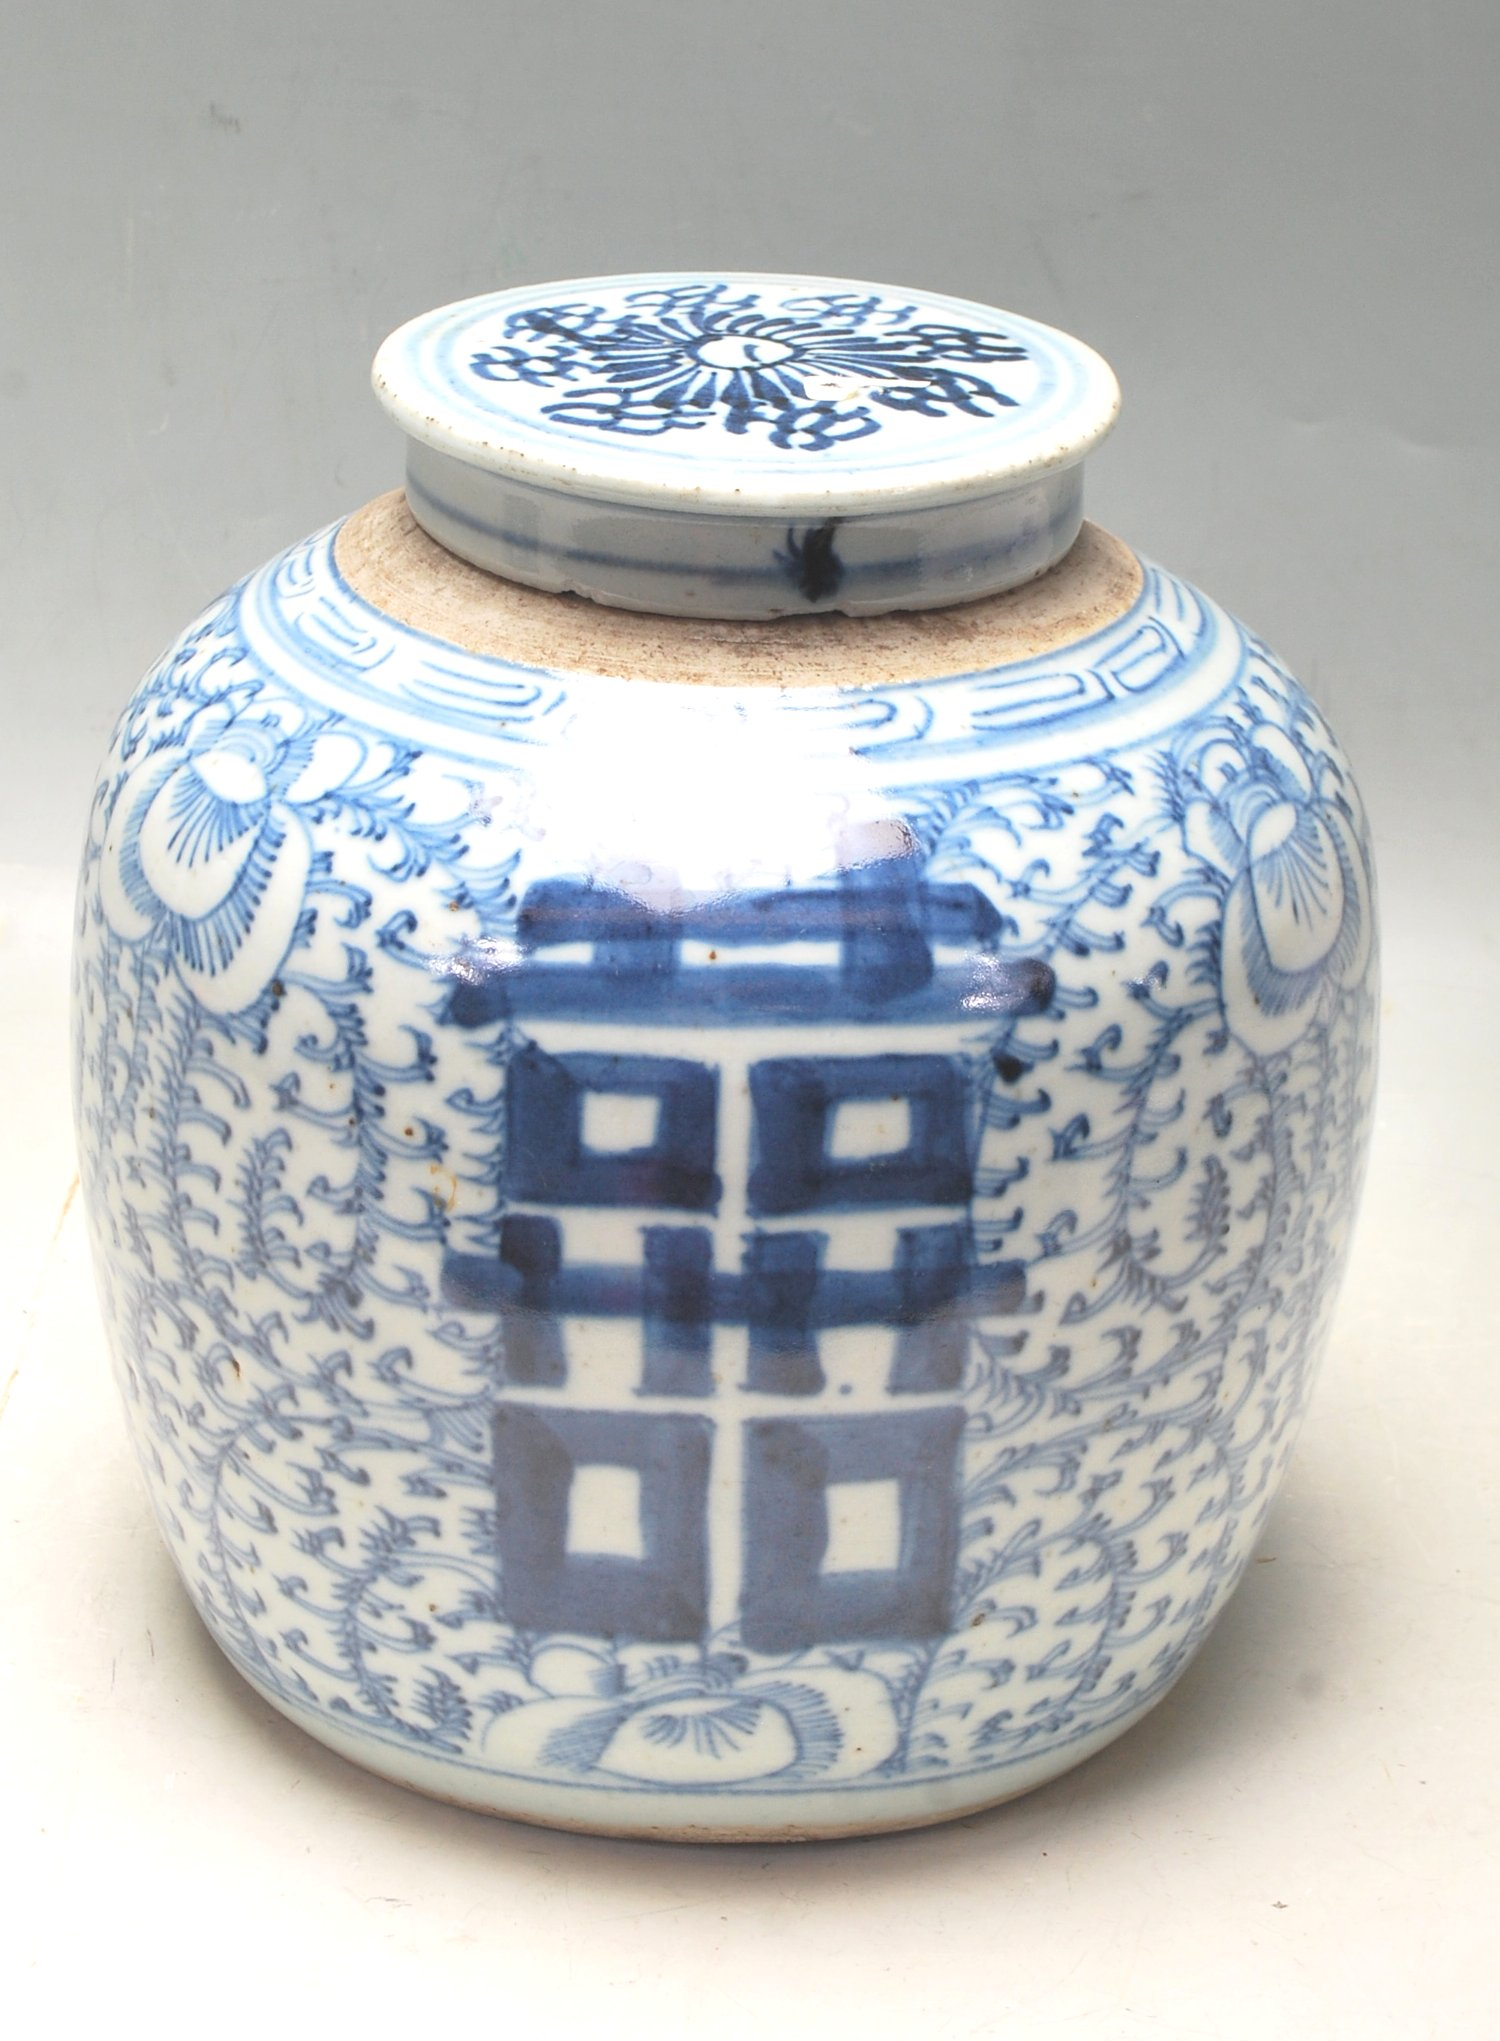 LATE 19TH CENTURY KANGXI CHINESE BLUE AND WHITE VASE